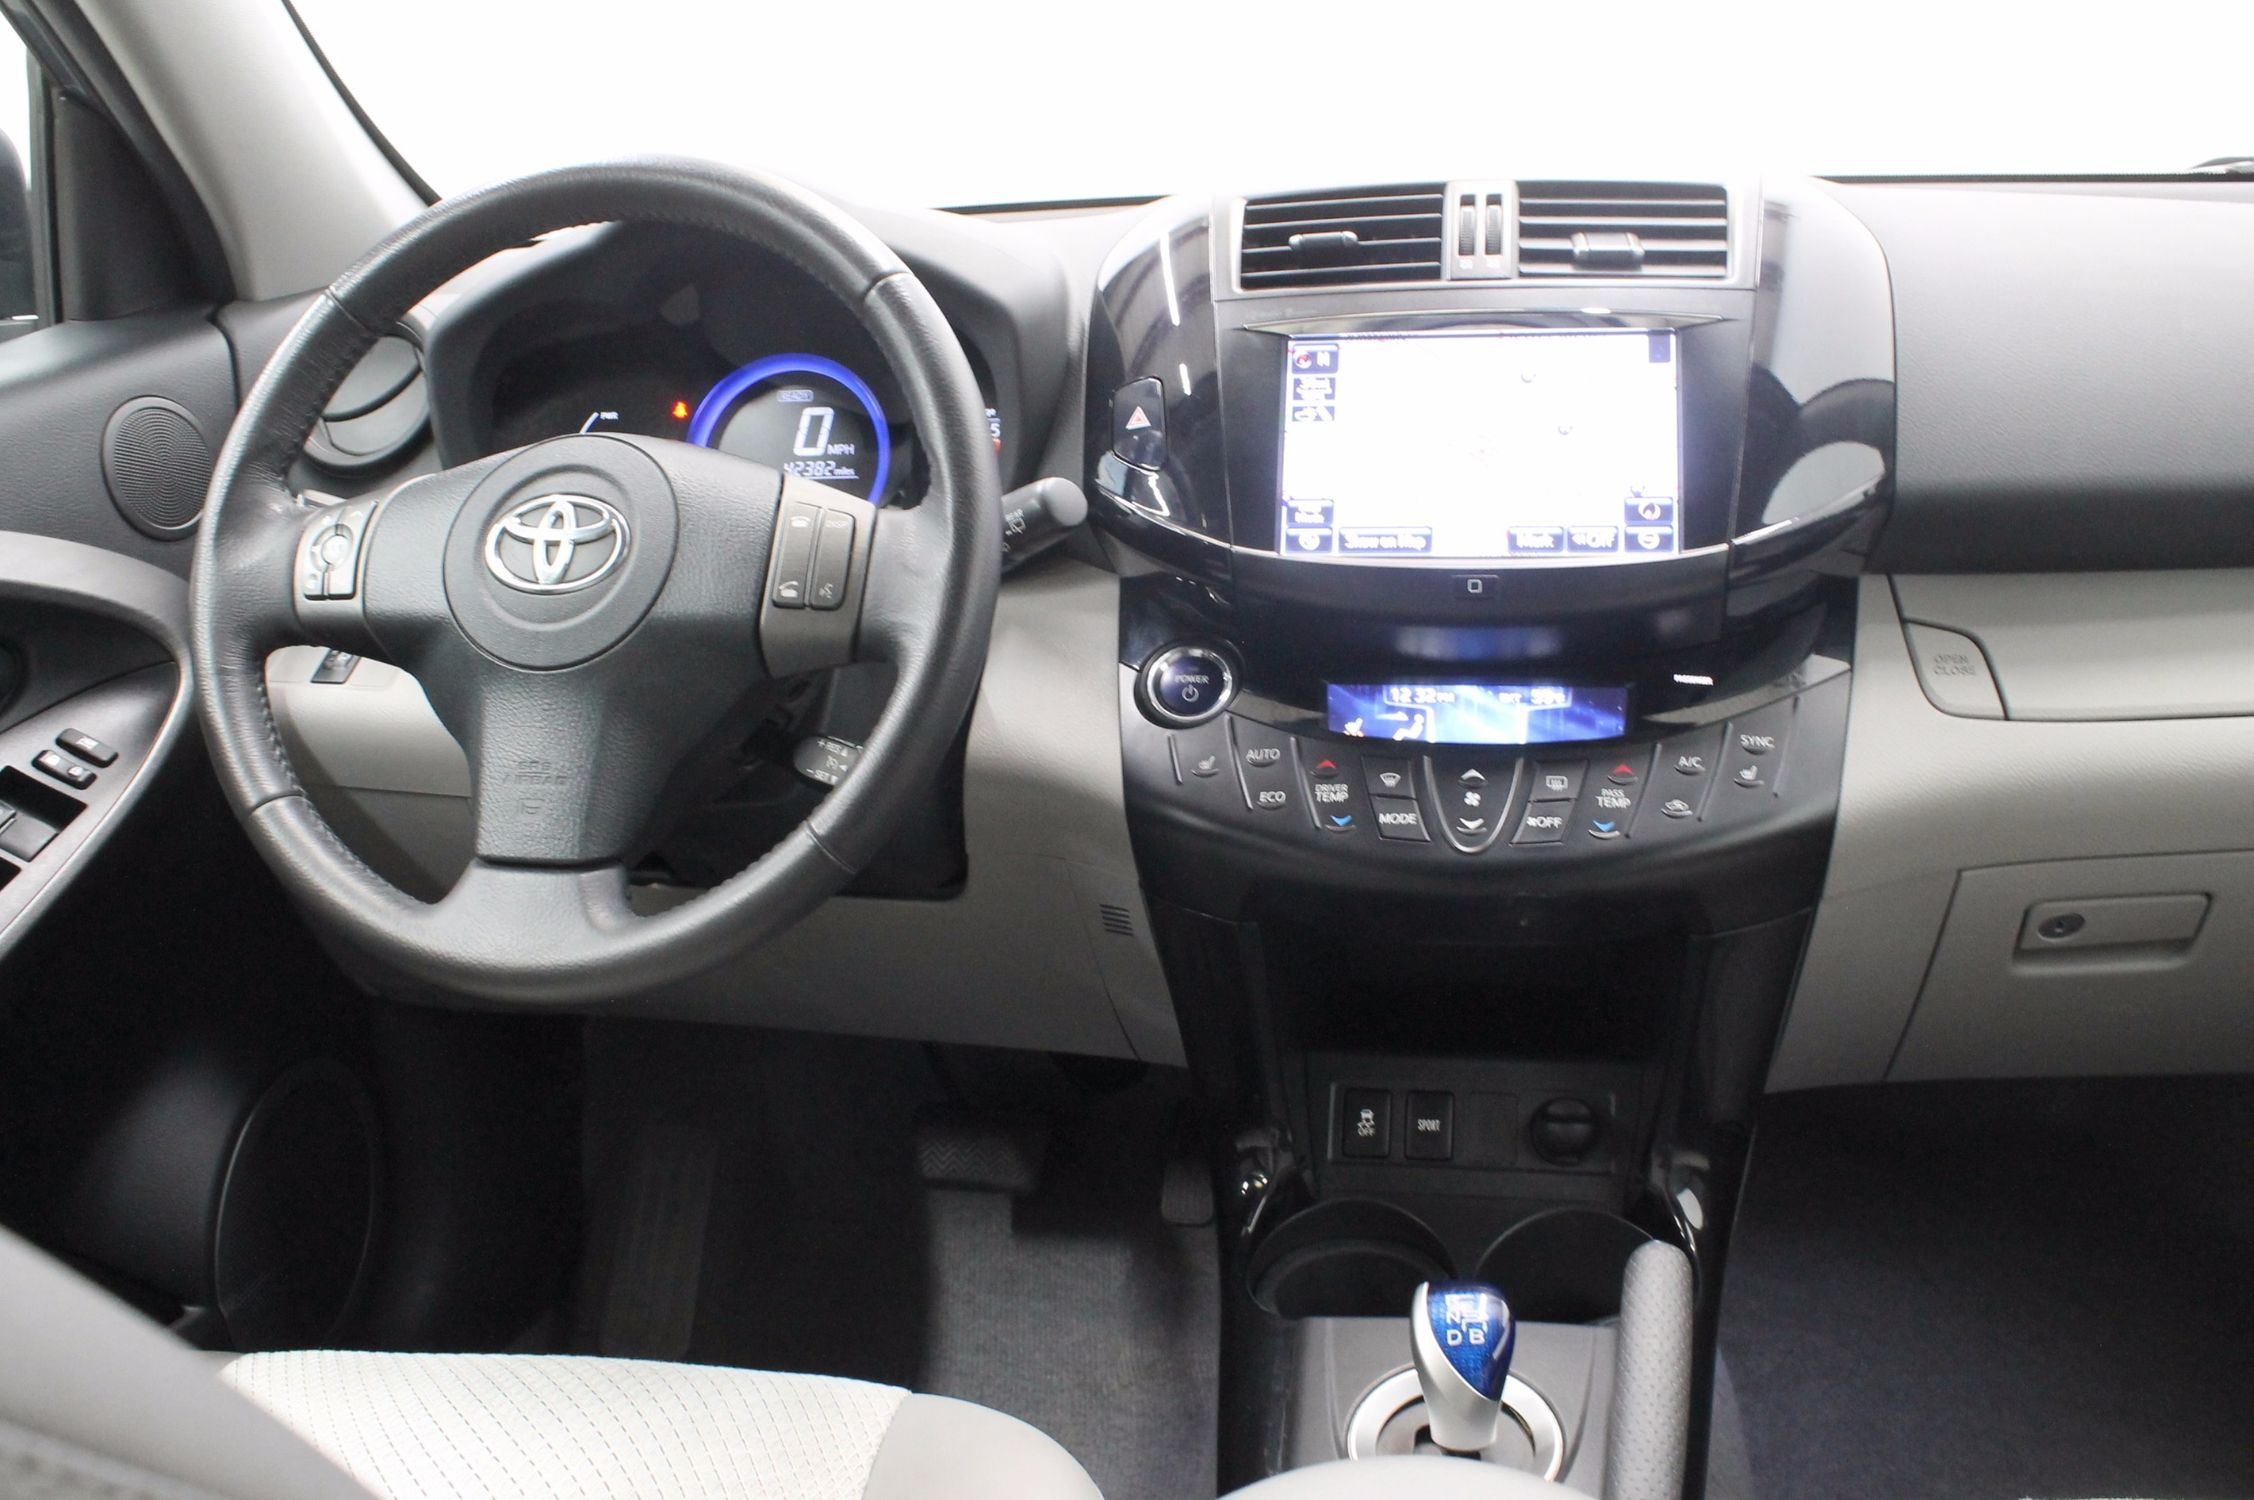 t interior images cars of hd toyota wallpaper ev